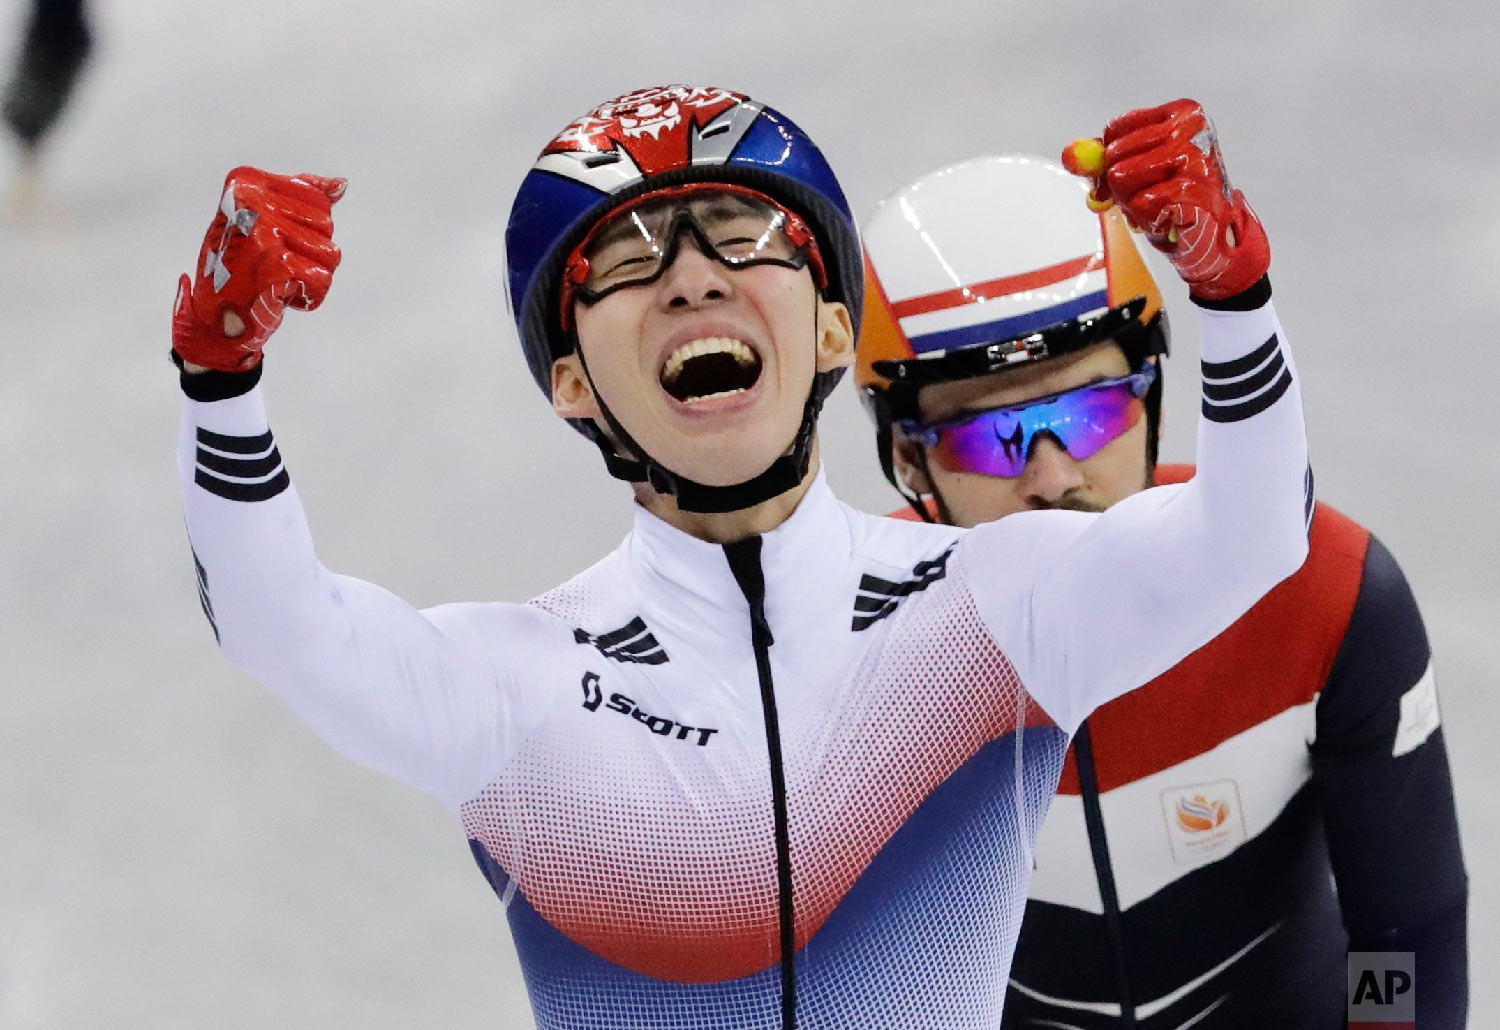 Lim Hyojun, of South Korea, celebrates after winning the men's 1500 meters short-track speedskating final in the Gangneung Ice Arena at the 2018 Winter Olympics in Gangneung, South Korea, Saturday, Feb. 10, 2018. (AP Photo/Bernat Armangue)